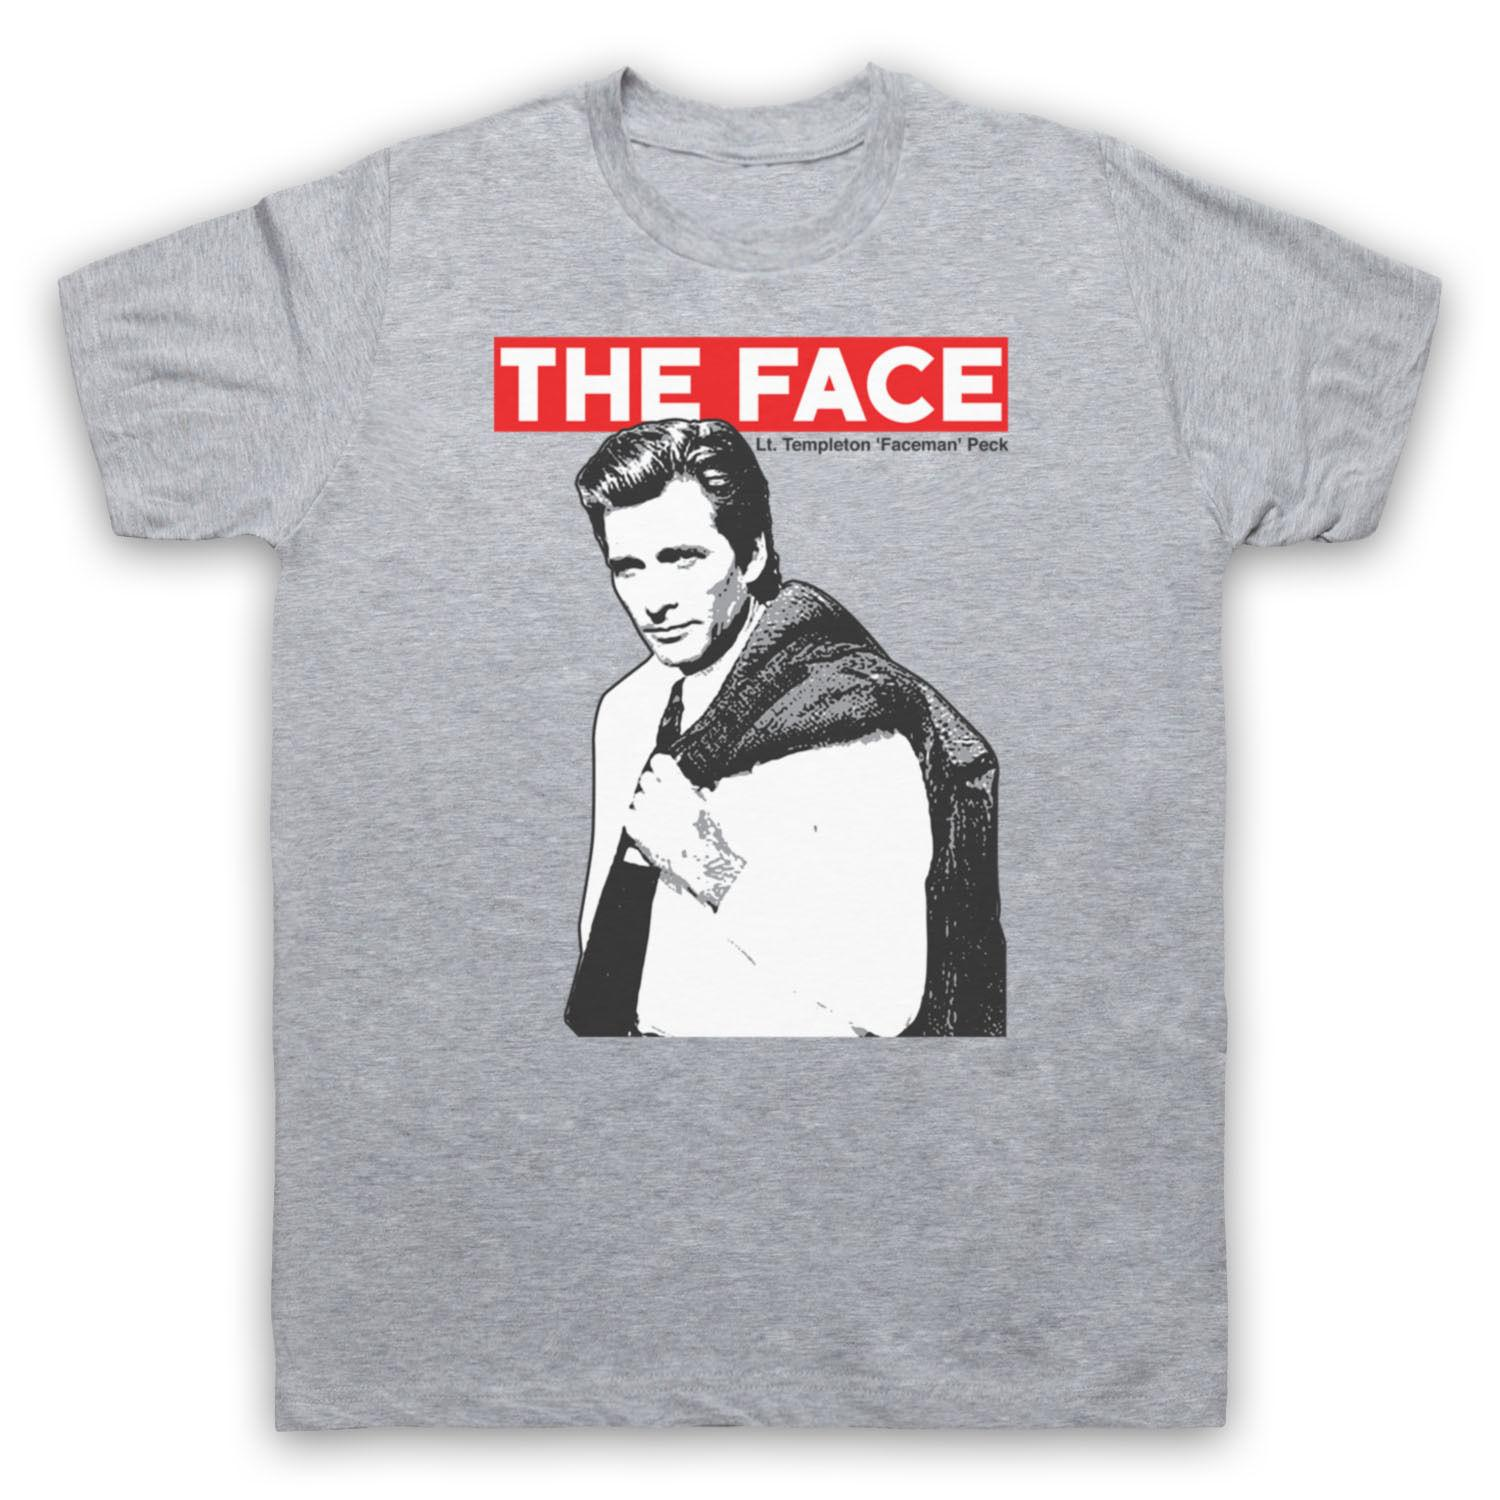 Templeton Faceman Peck The Face 1980s Tv A Team T-shirt Unofficial Mens Ladies 100% algodón Hombre Mujer Camiseta Camisetas Personalizado